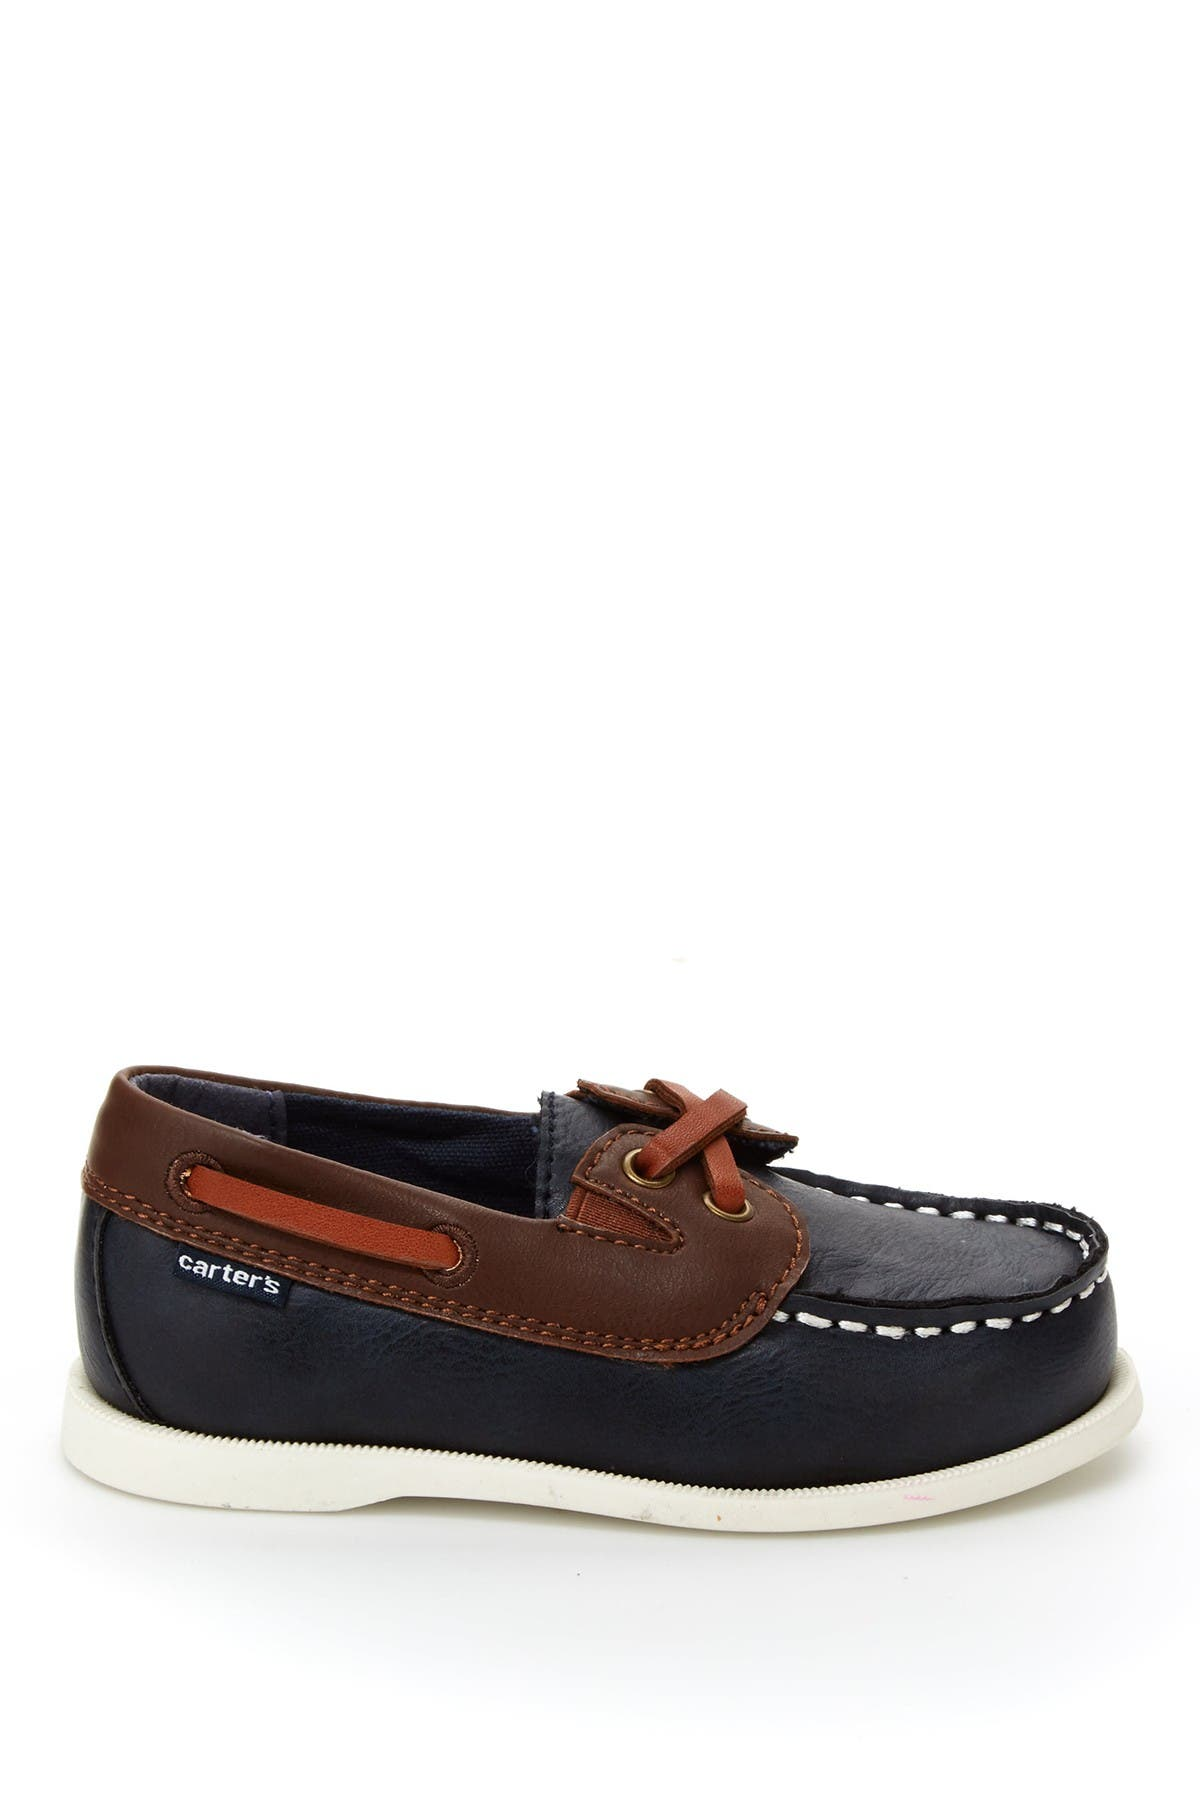 Image of Carter's Bauk Colorblock Moccasin Driver